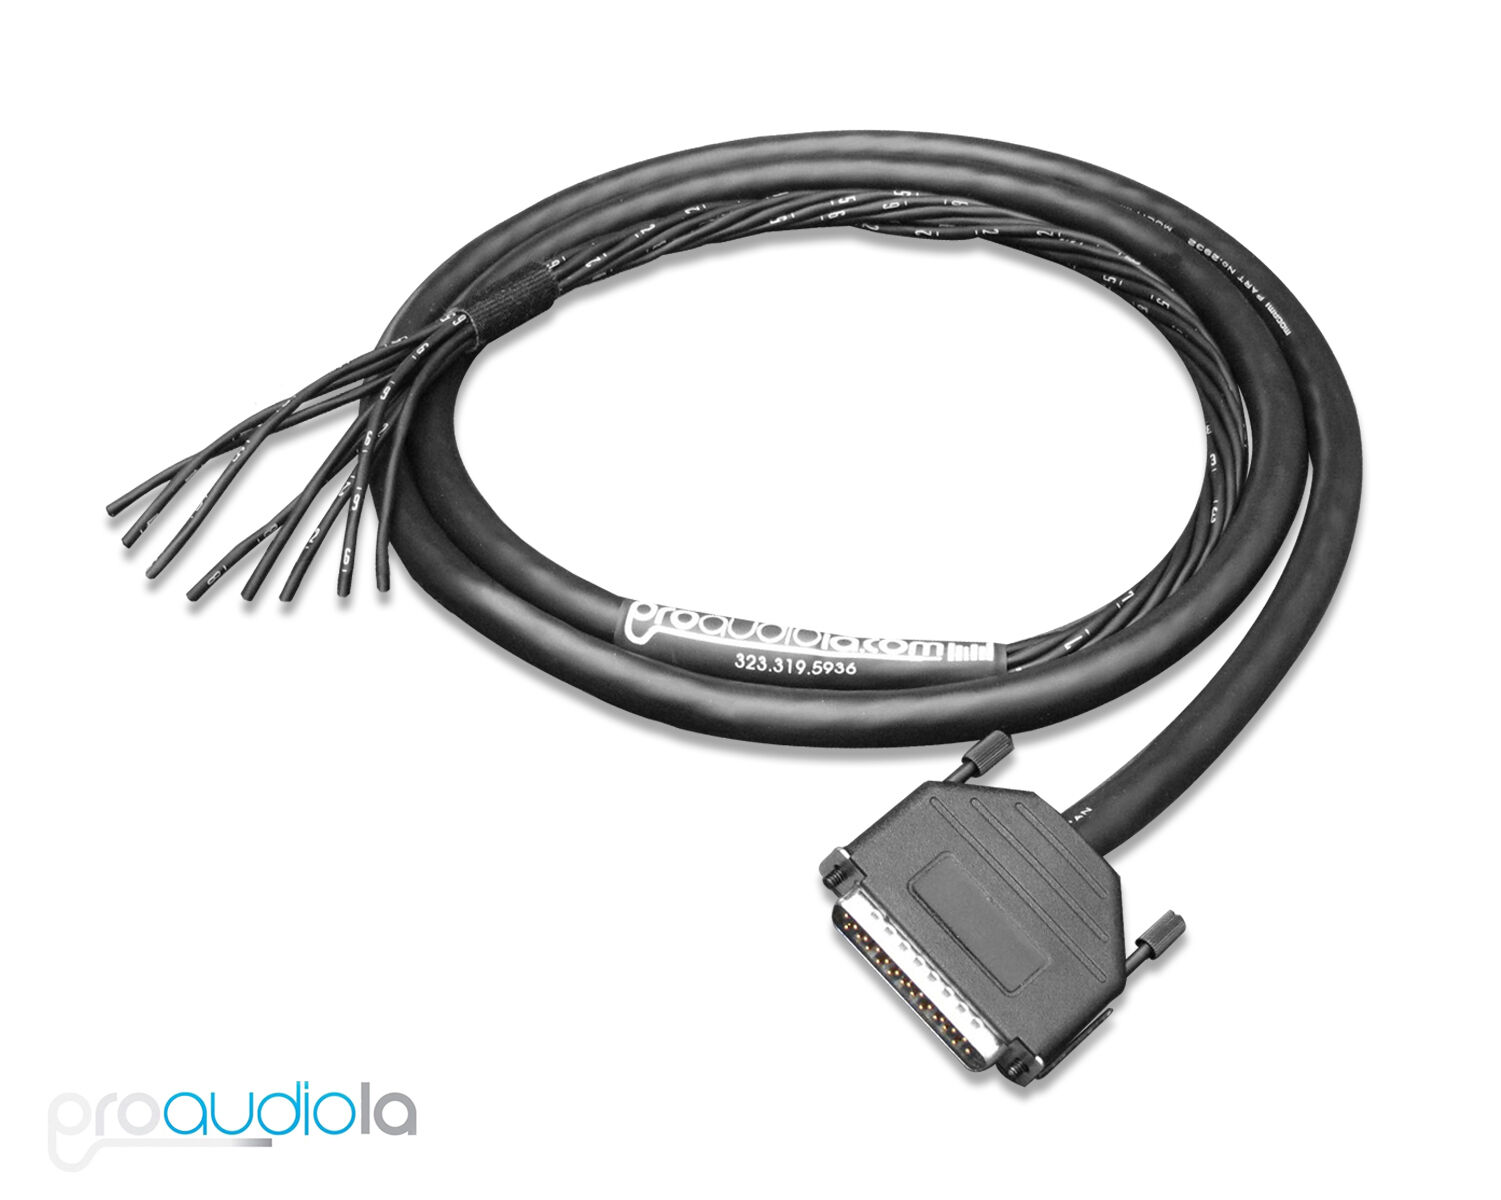 Standard Mogami 2932 Gold Db25 D Sub Snake Bare Pigtails 2 Ft To Usb Cable Schematic